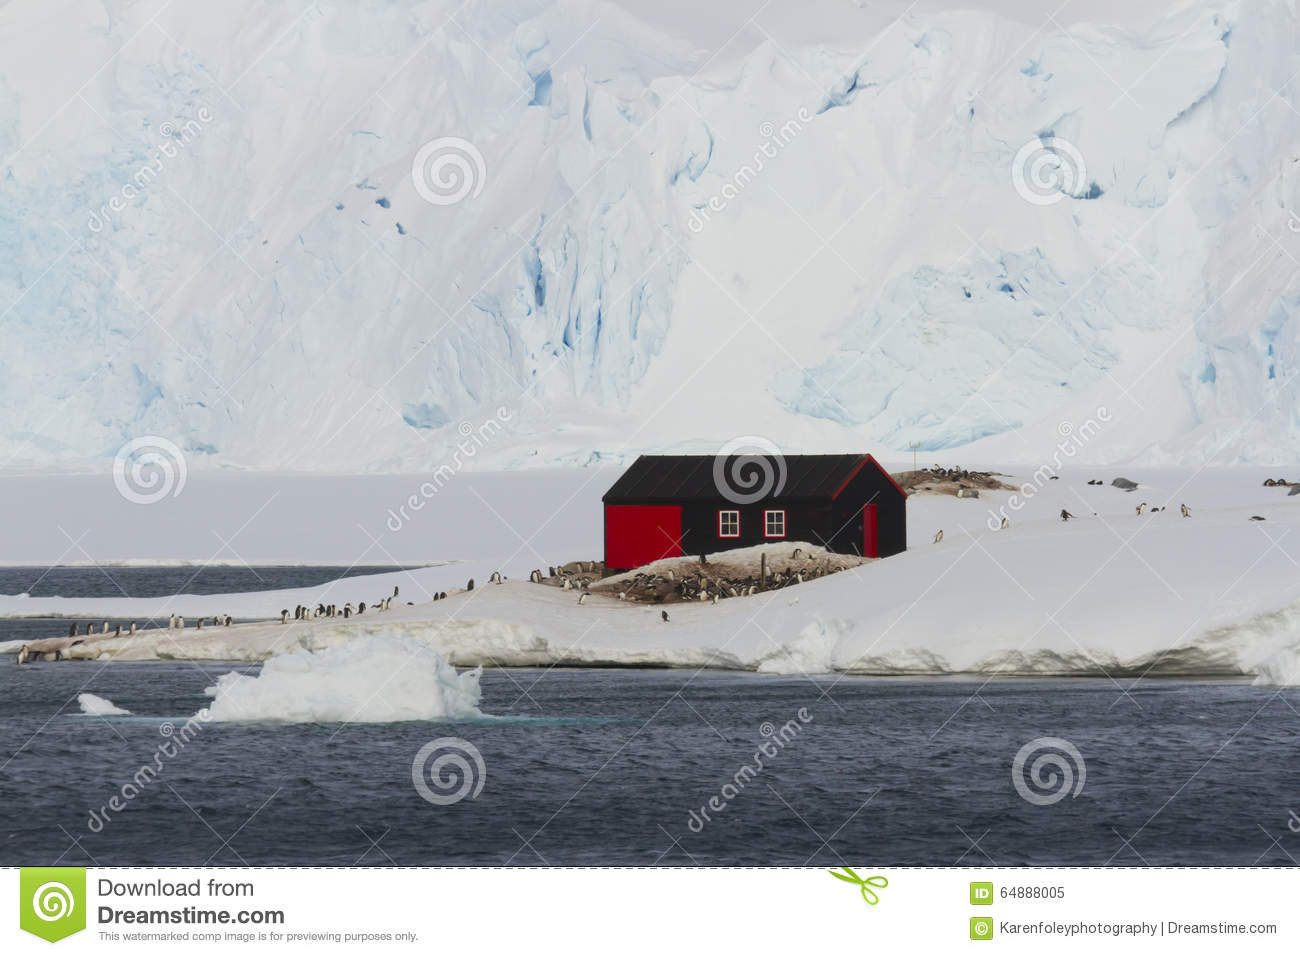 Download Port Lockroy, Base A, Heritage Site Antarctica Stock Image - Image of expedition, heritage: 64888005